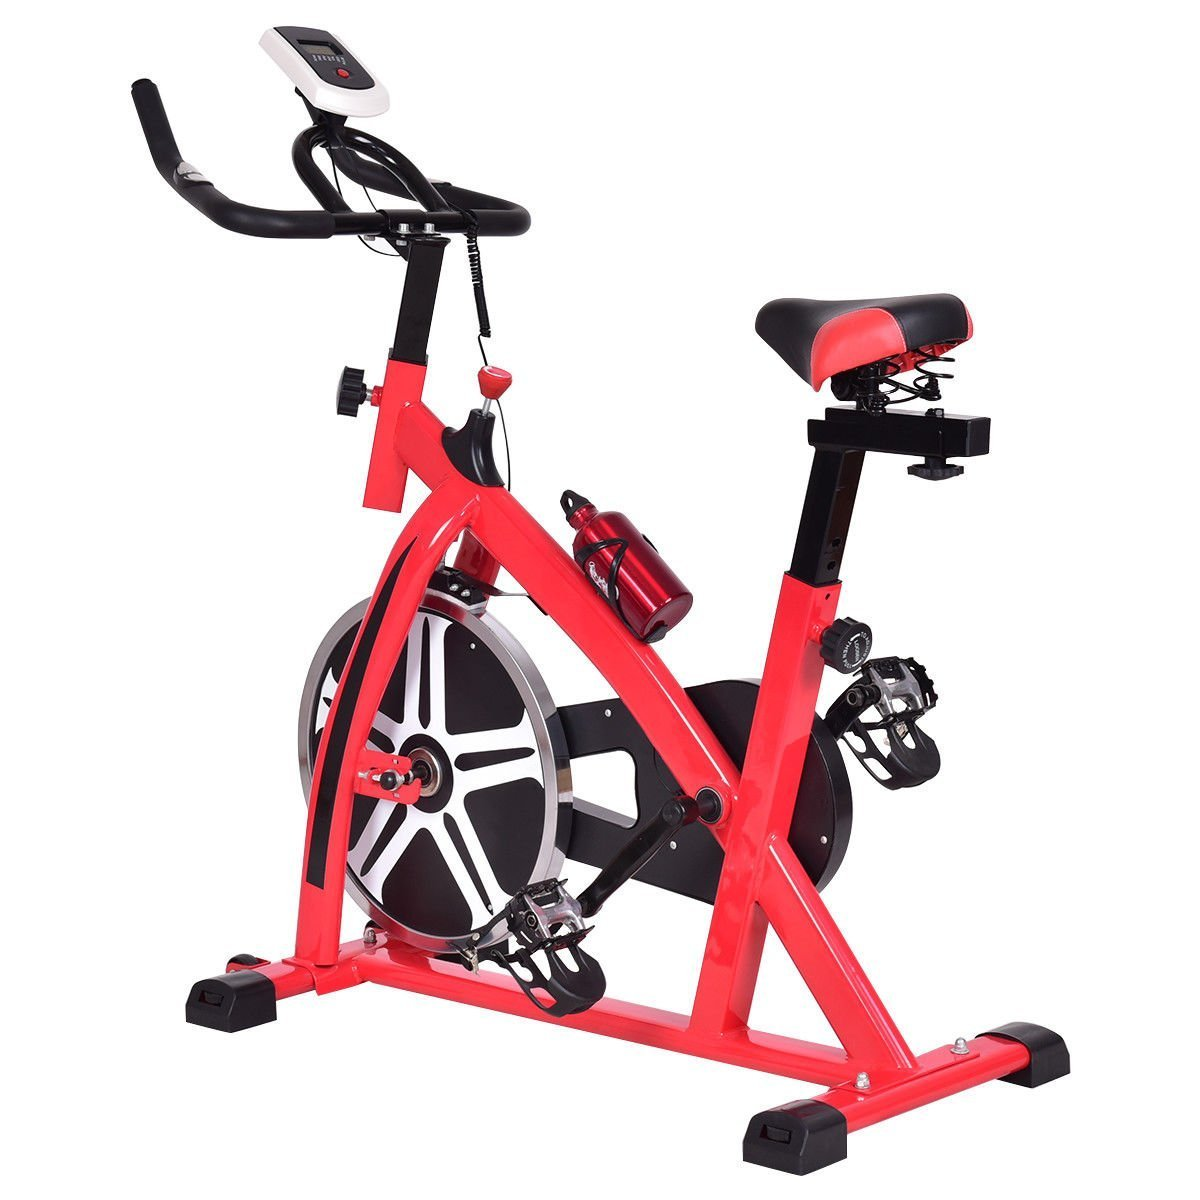 Gymax Cardio Fitness Stationary Exercise Bike, Cycle Trainer Indoor Flywheel Cardio Fitness Bicycle by Gymax (Image #2)